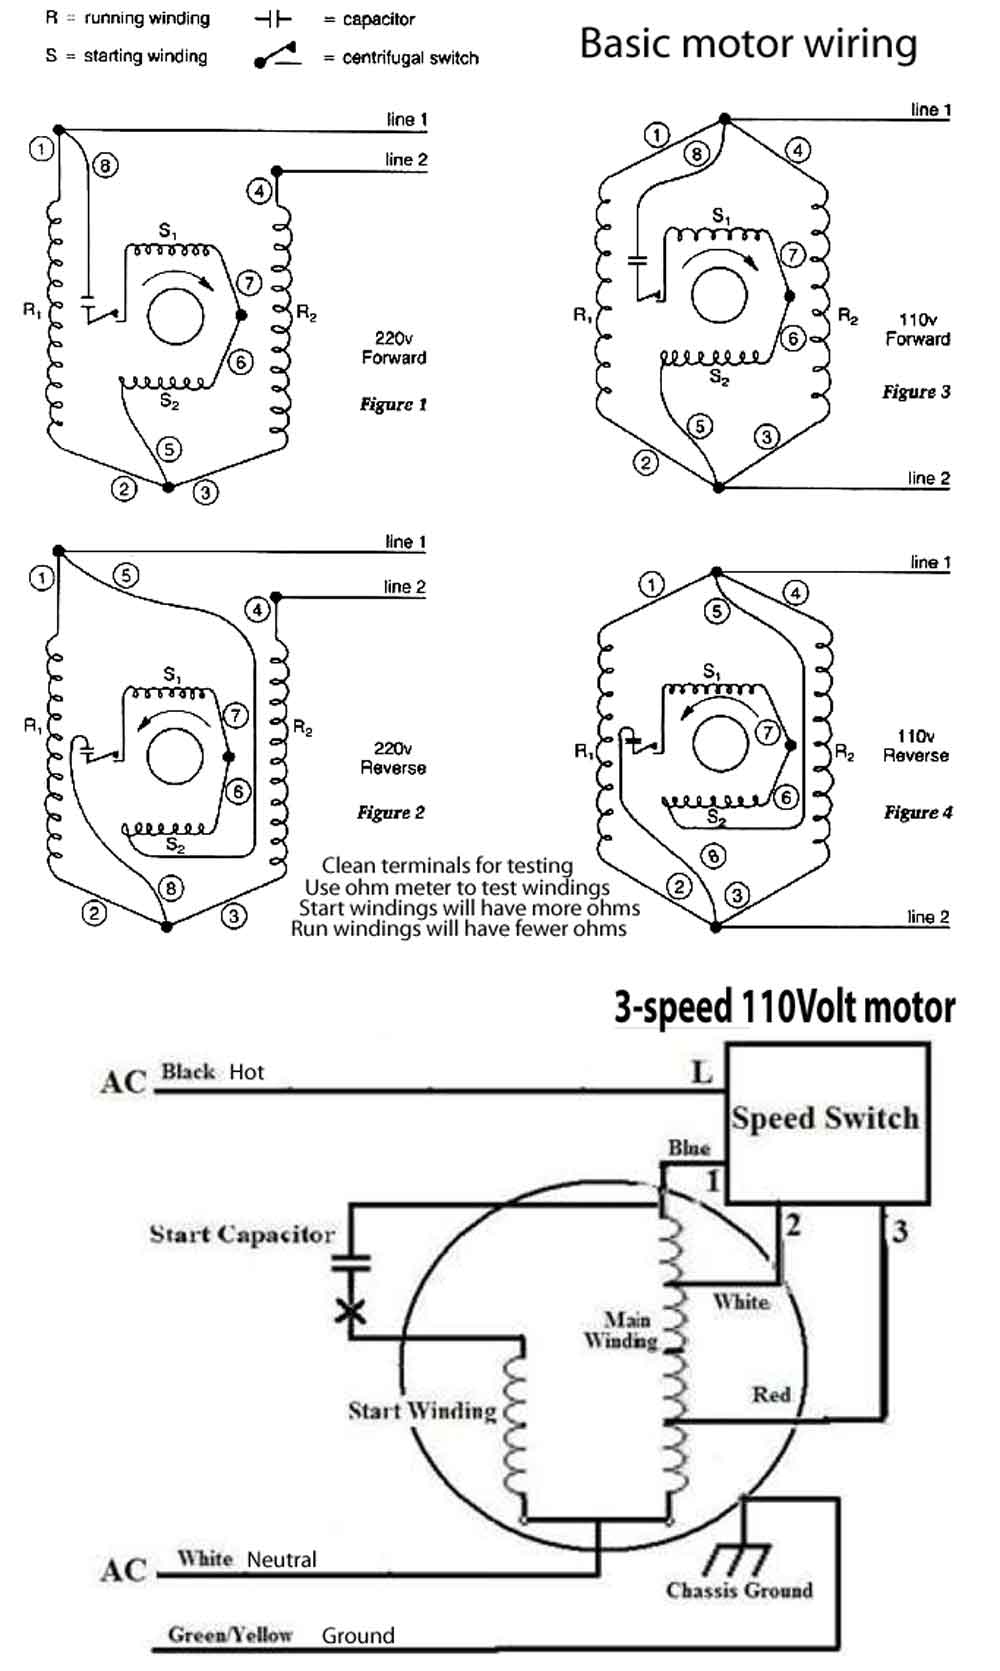 Basic motor wiring illustration .jpg